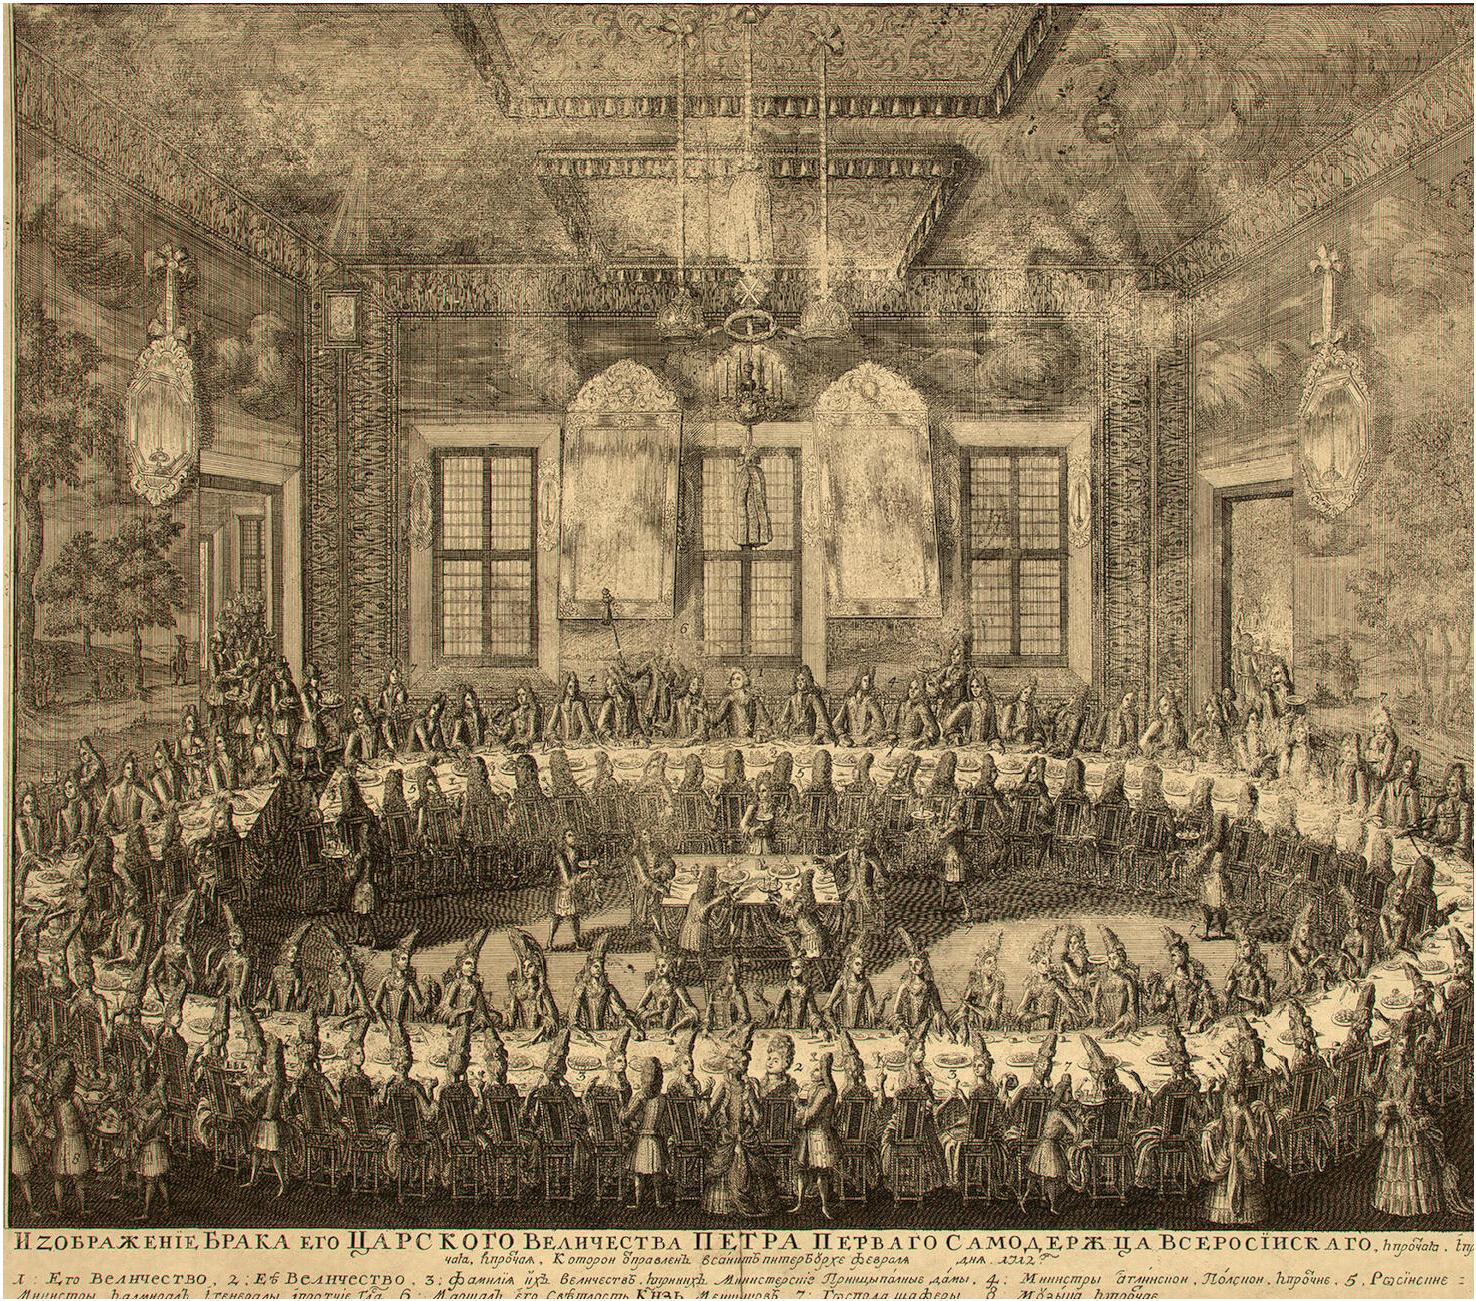 File:Peter I and Catherine I wedding 1712.jpg